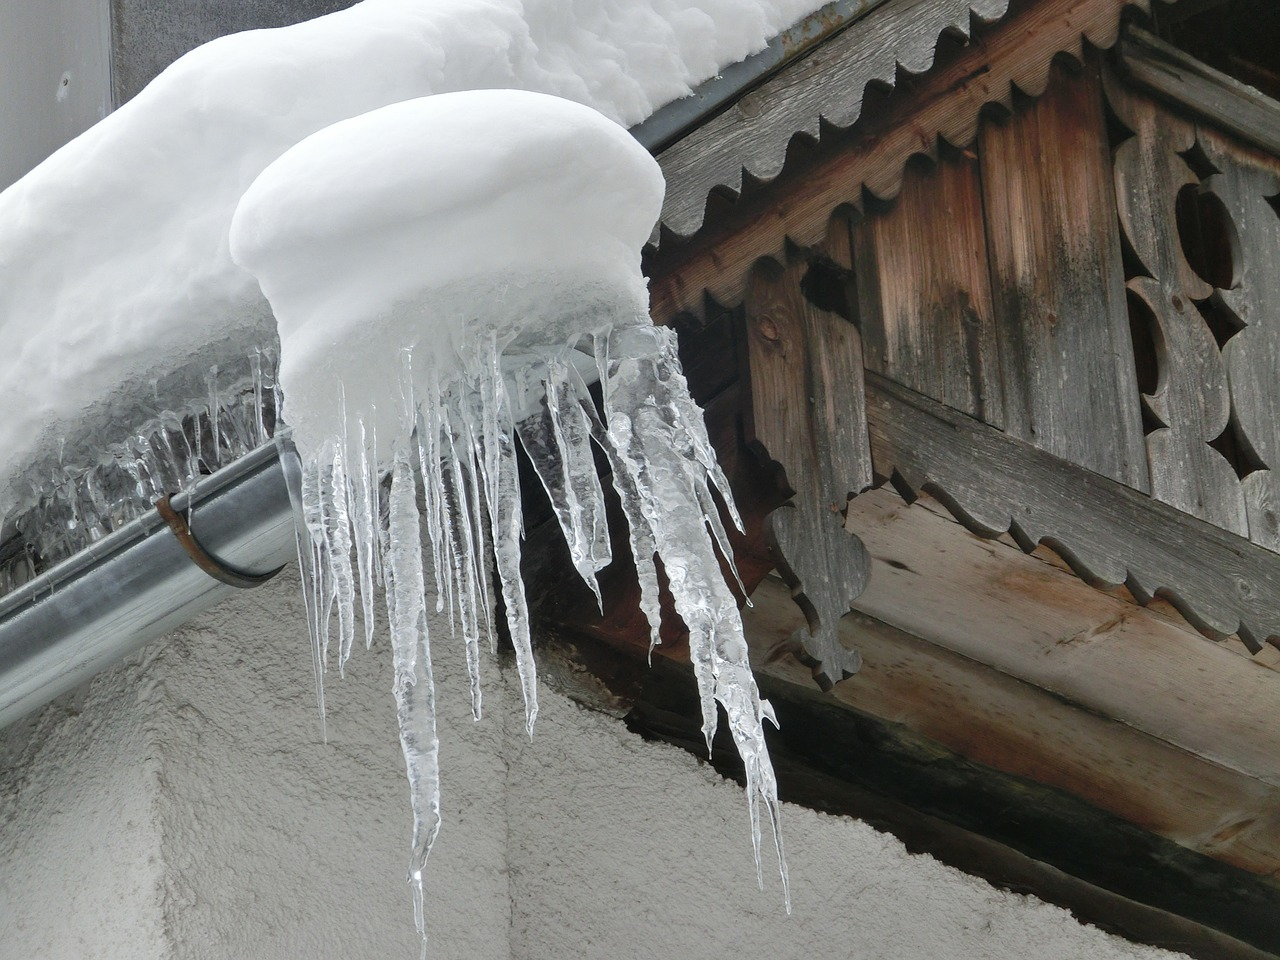 Ice dams are dangerous and result in expensive home fixes after they melt.